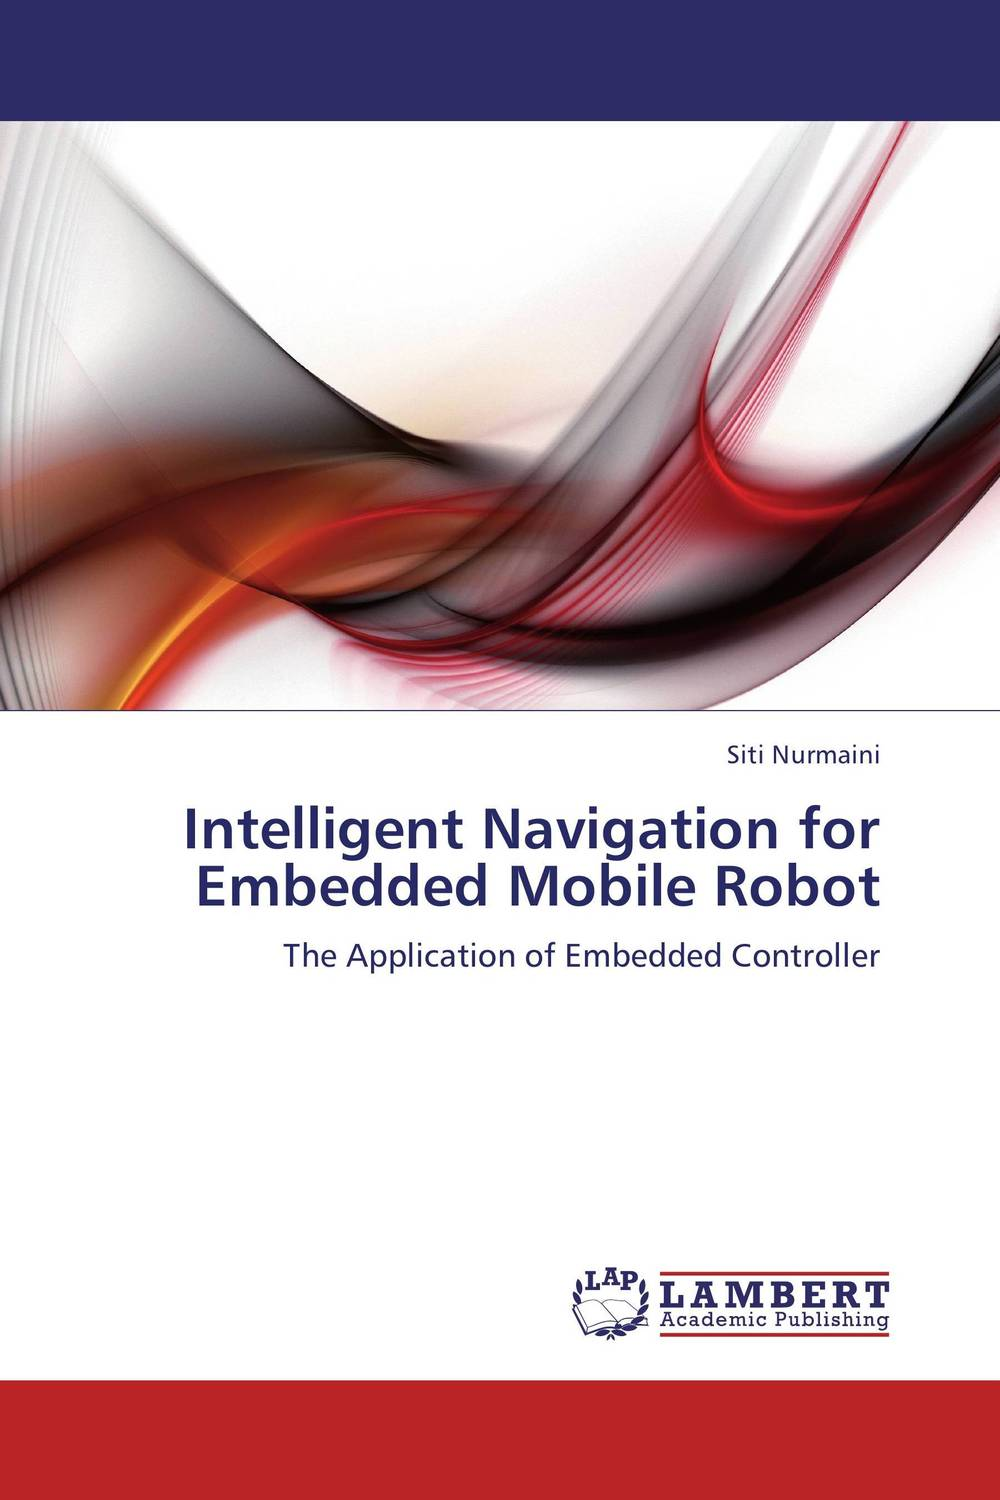 Intelligent Navigation for Embedded Mobile Robot mpso and mga approaches for mobile robot navigation